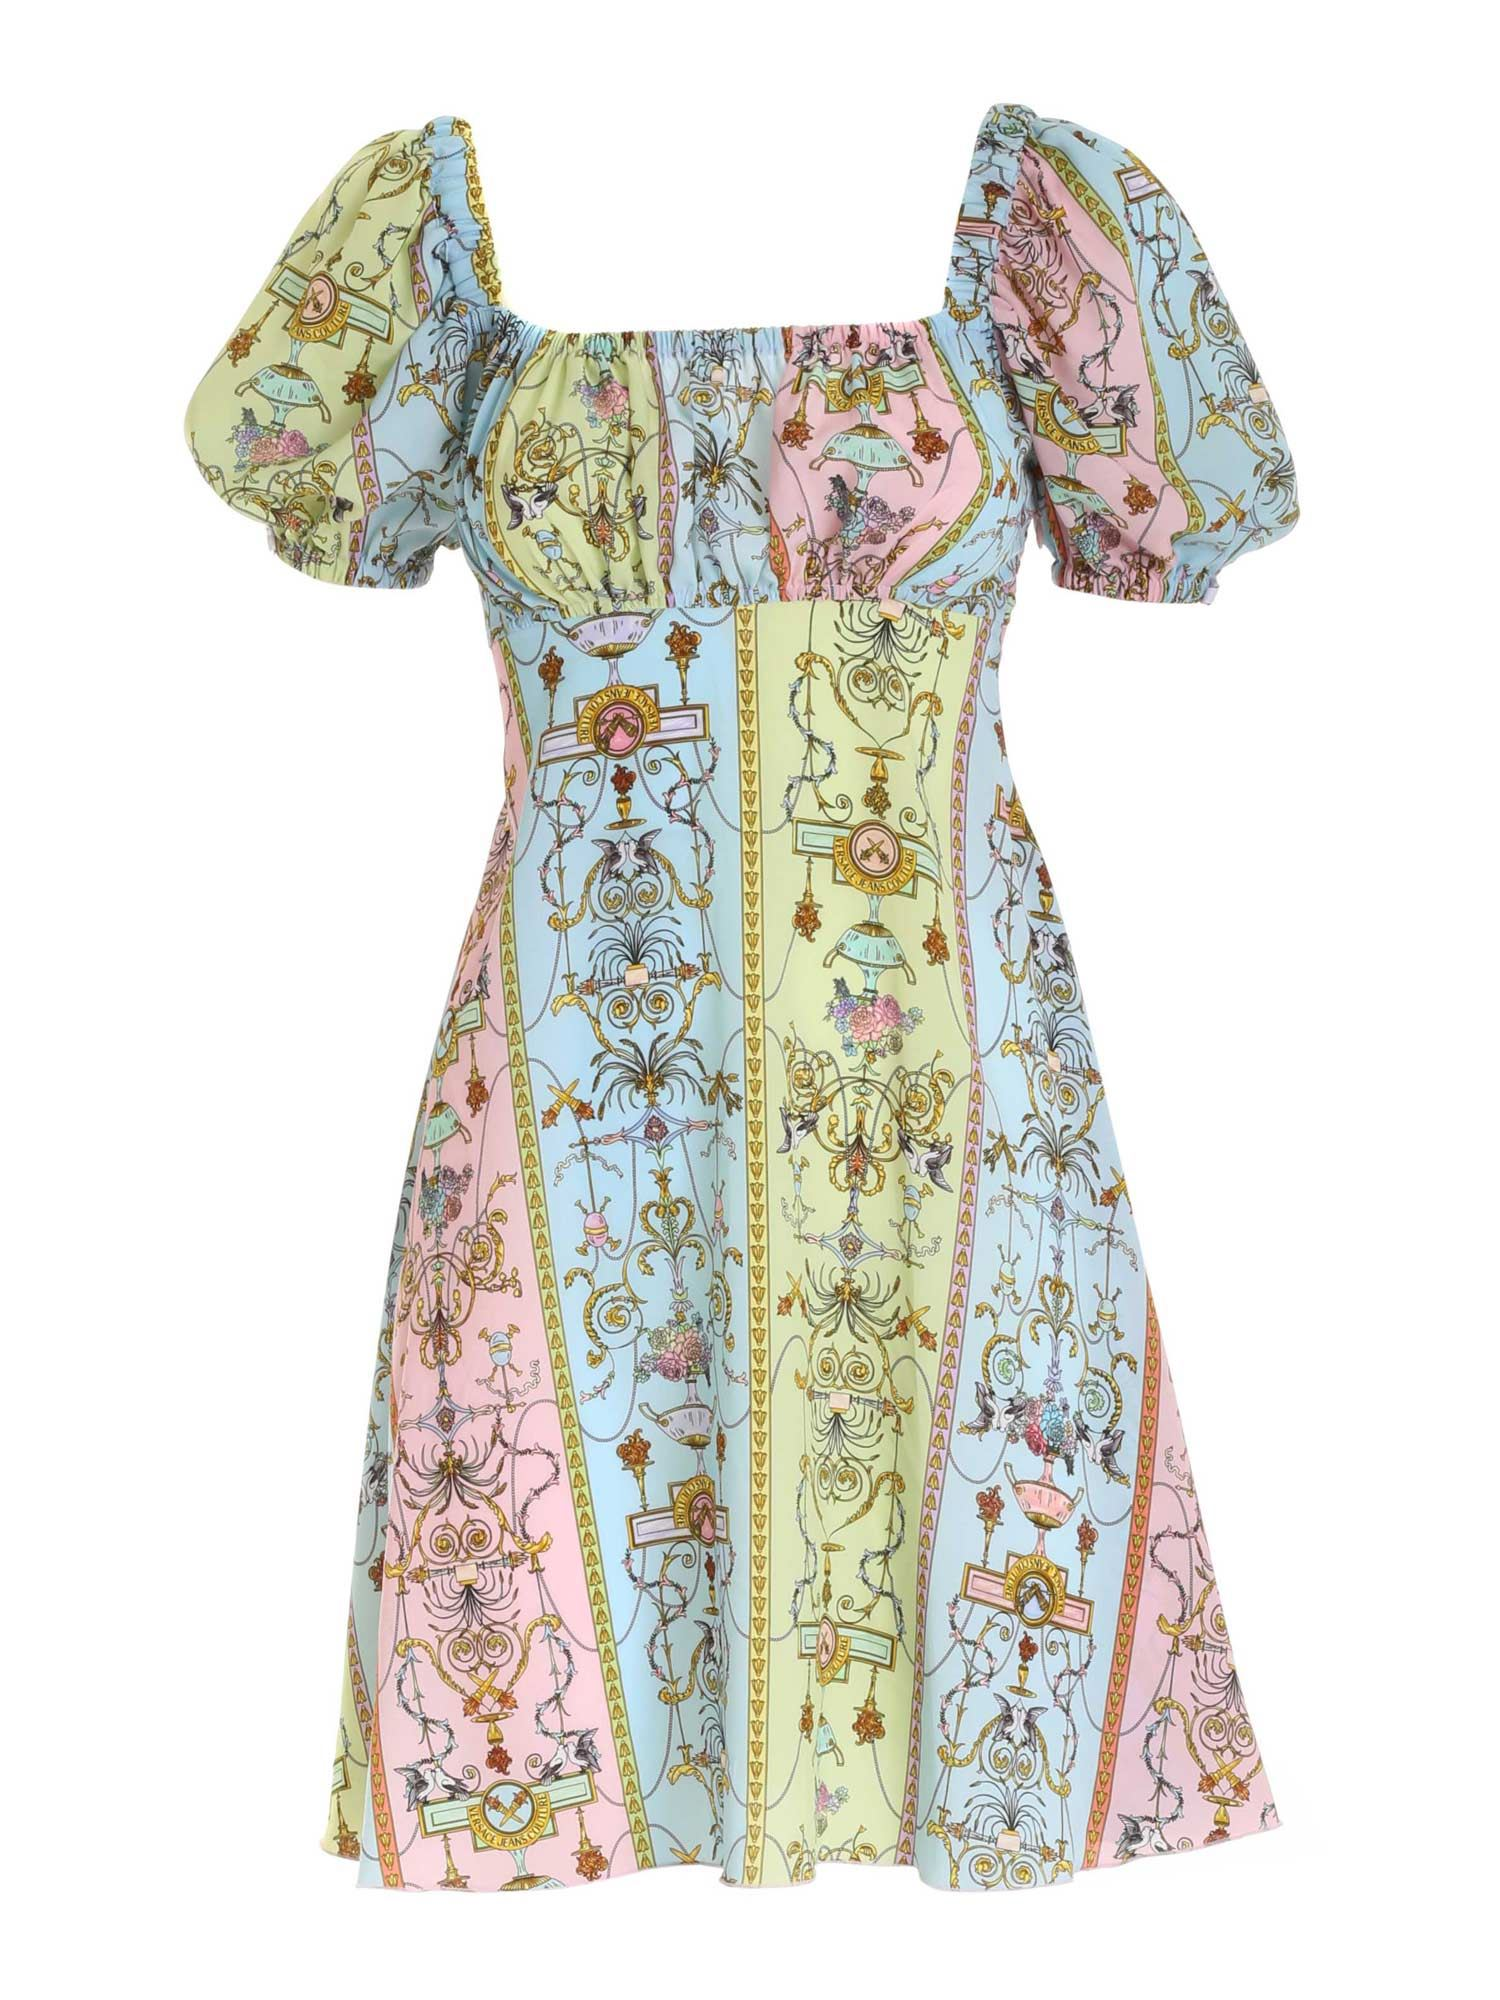 Versace Jeans Couture TUILERIES PRINT DRESS IN LIGHT BLUE